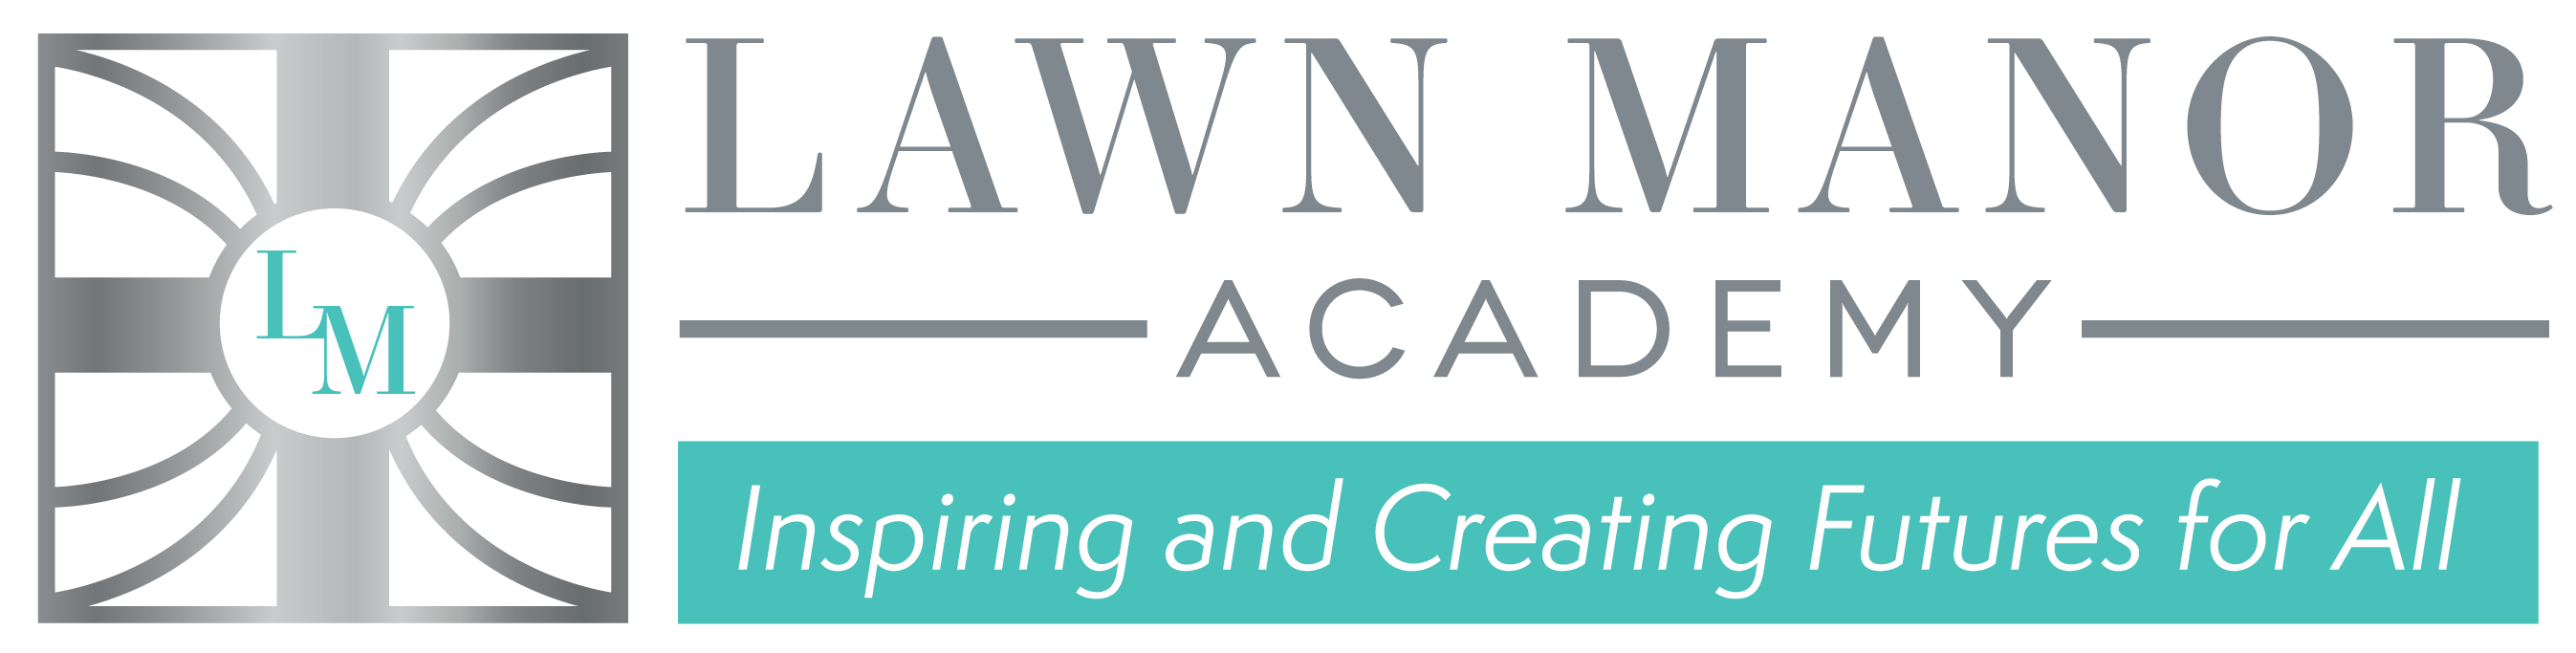 Lawn Manor Academy | Salcombe Grove, Swindon, Wilts SN3 1ER UK